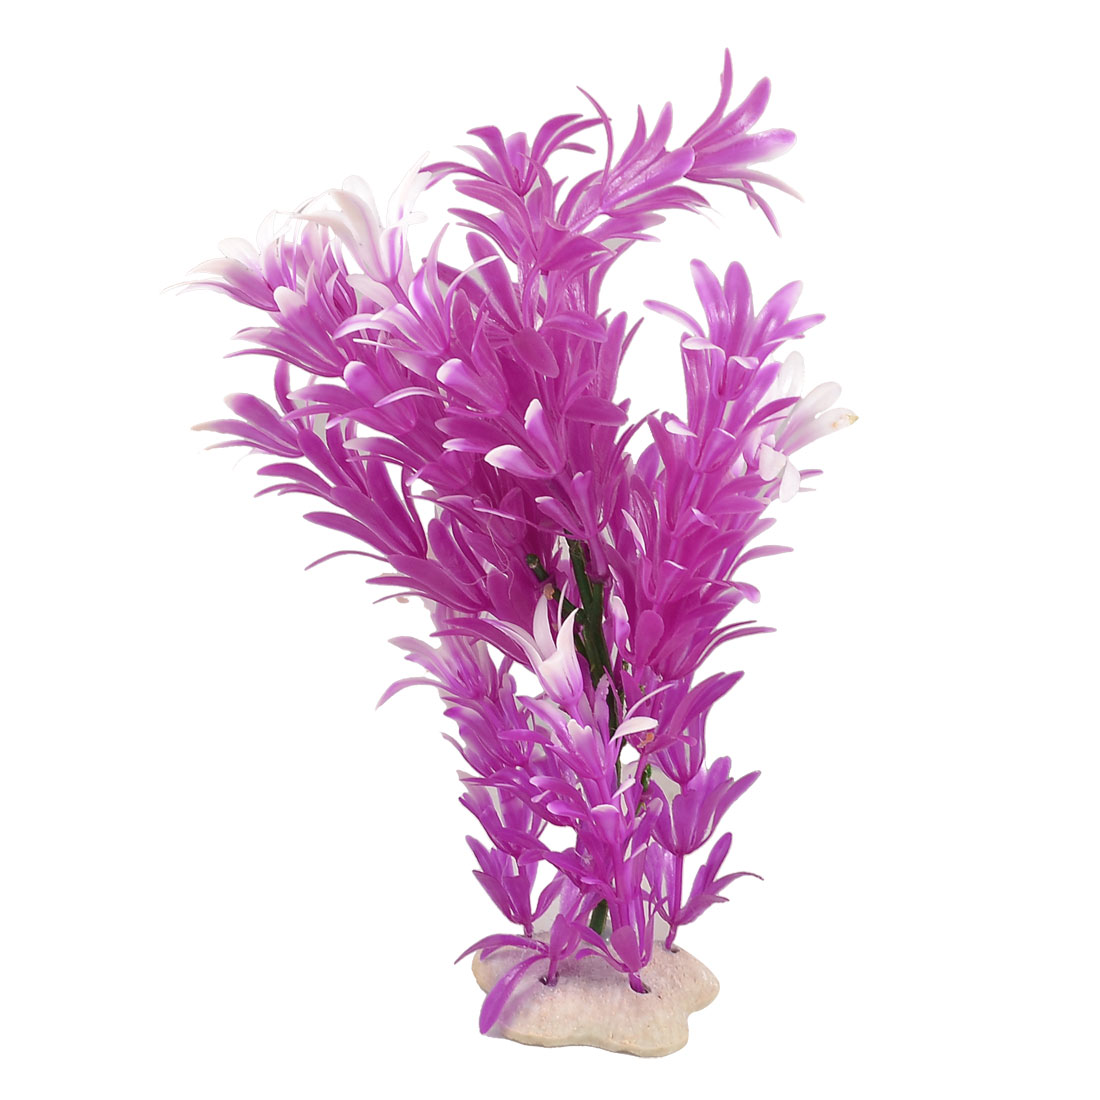 "Manmade Plastic Fuchsia White Leaves Plant for Aquarium 8.7"" Height"